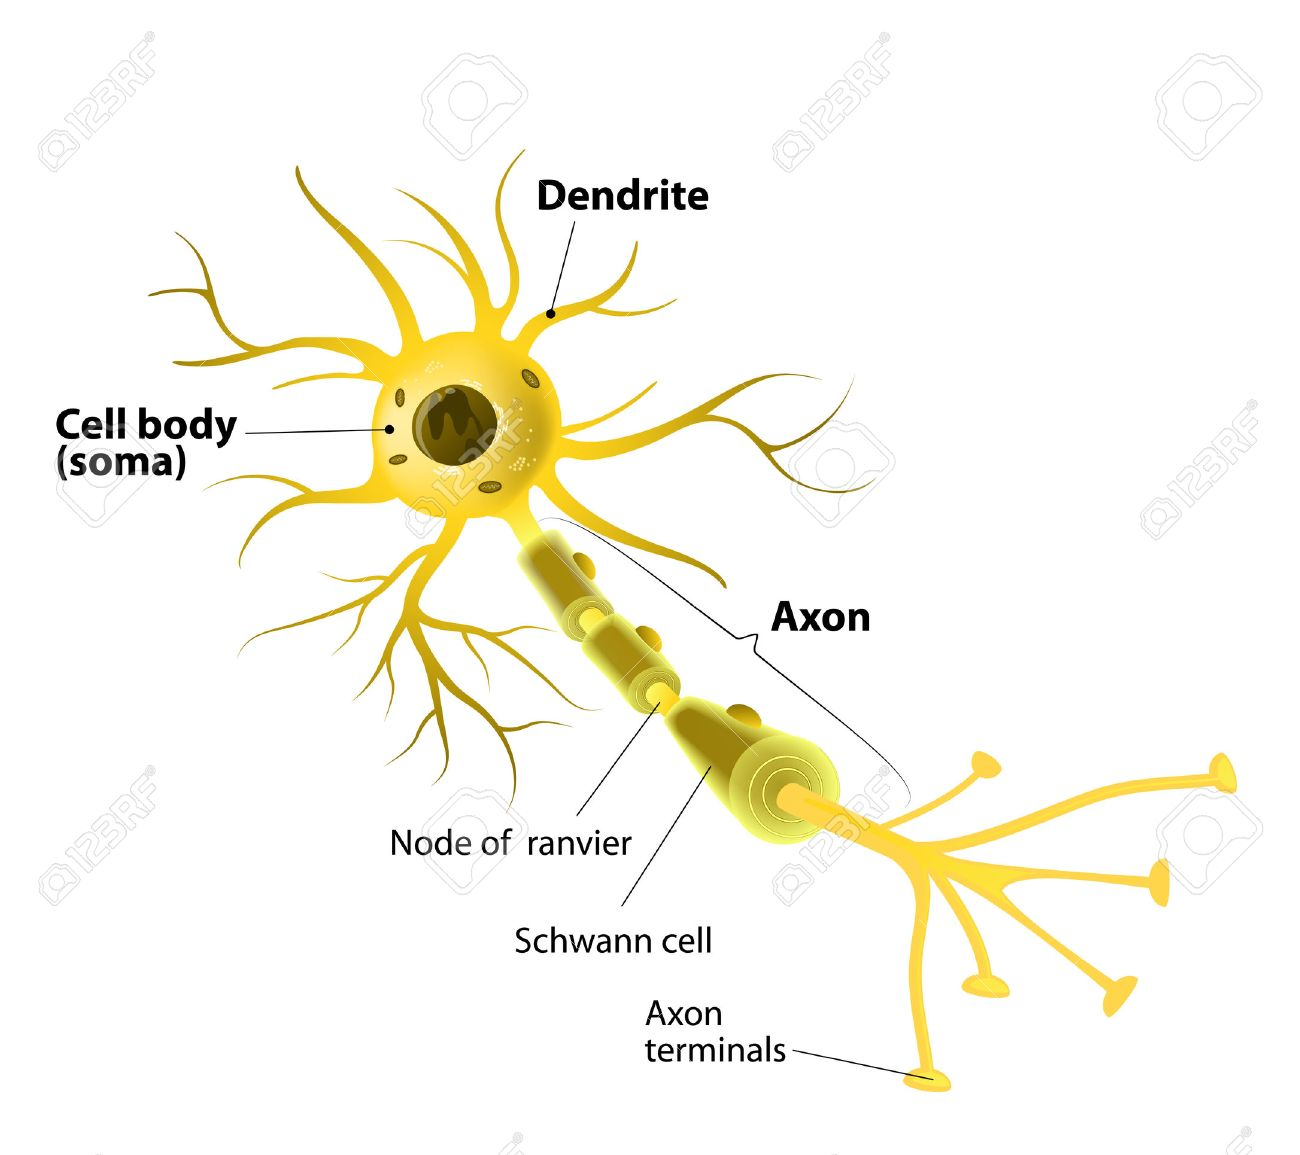 Neuron and synapse labeled diagram royalty free cliparts vectors neuron and synapse labeled diagram stock vector 37371607 ccuart Image collections